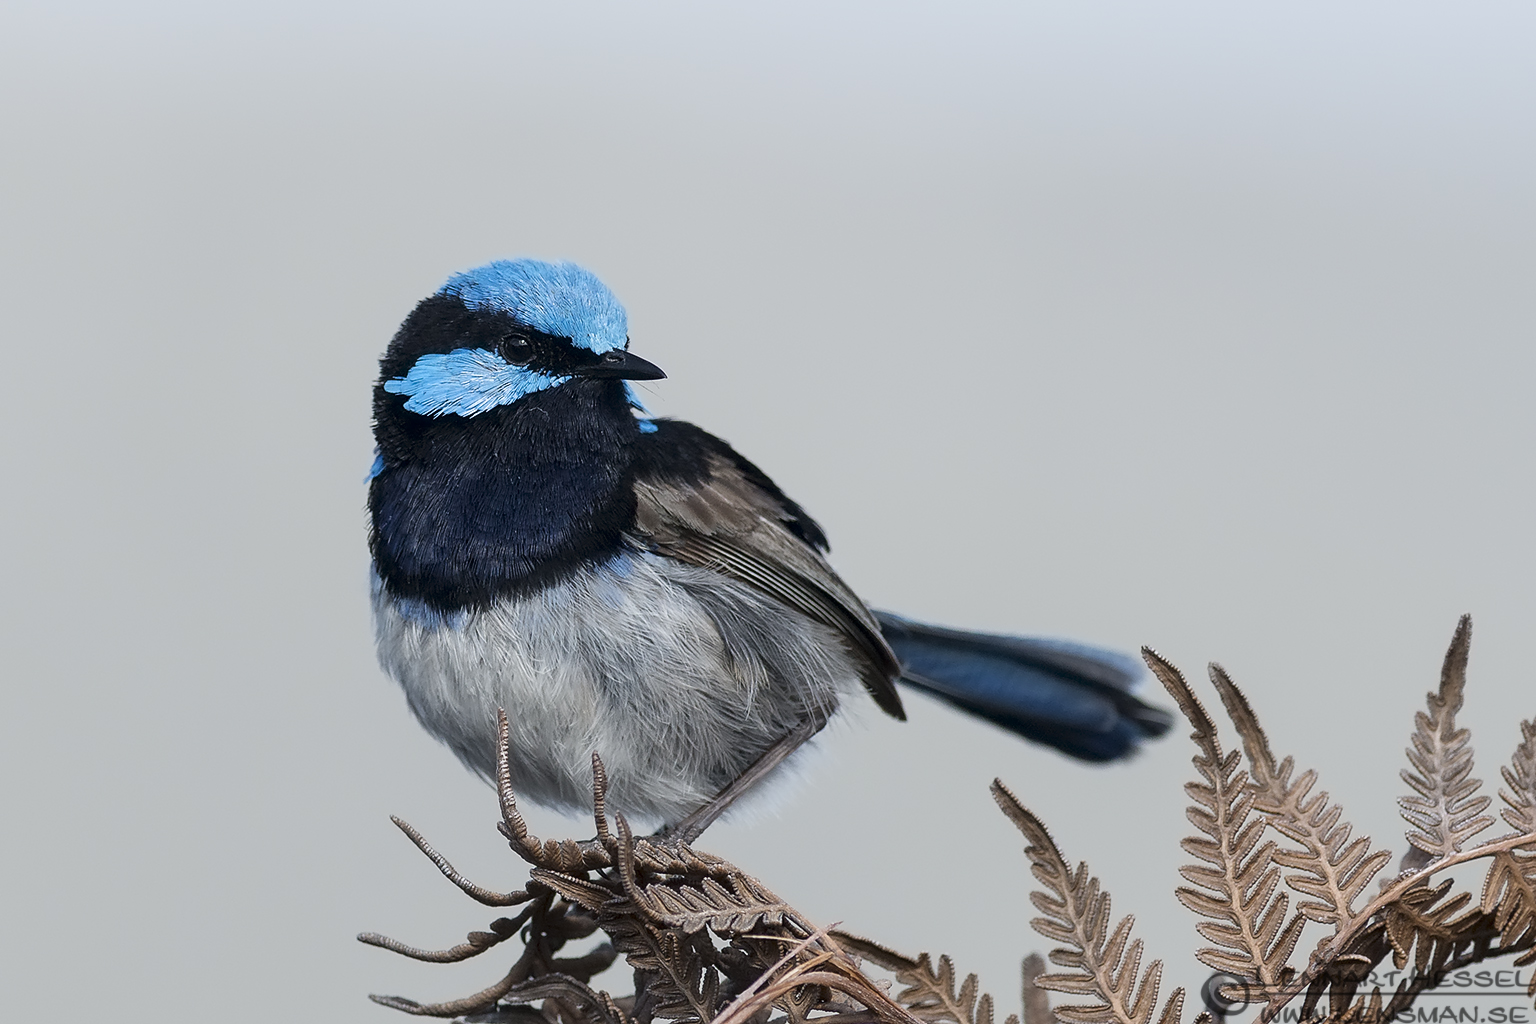 Superb Fairywren Bruny Island